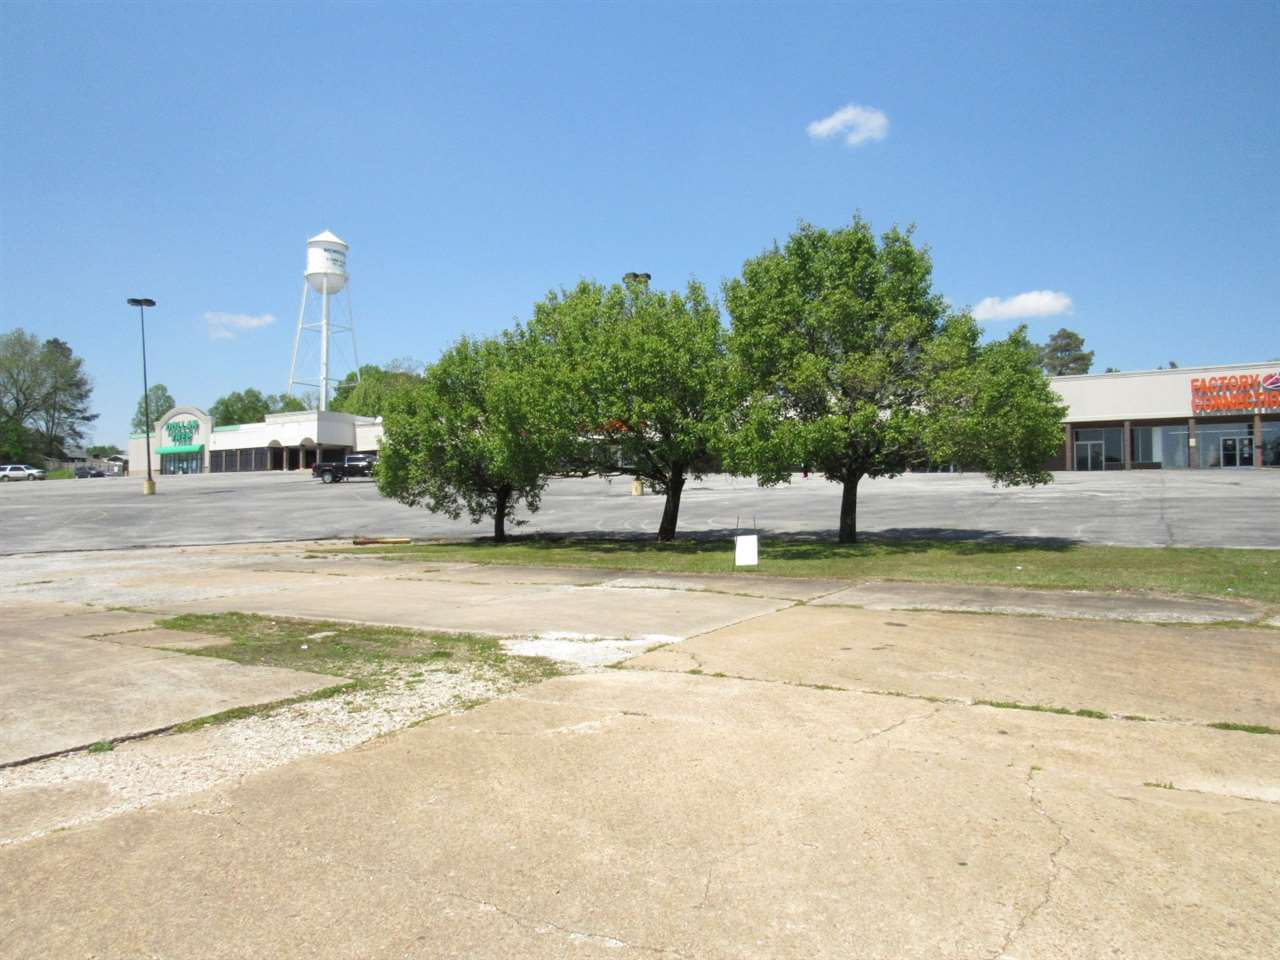 411 E Main Property Photo - Brownsville, TN real estate listing